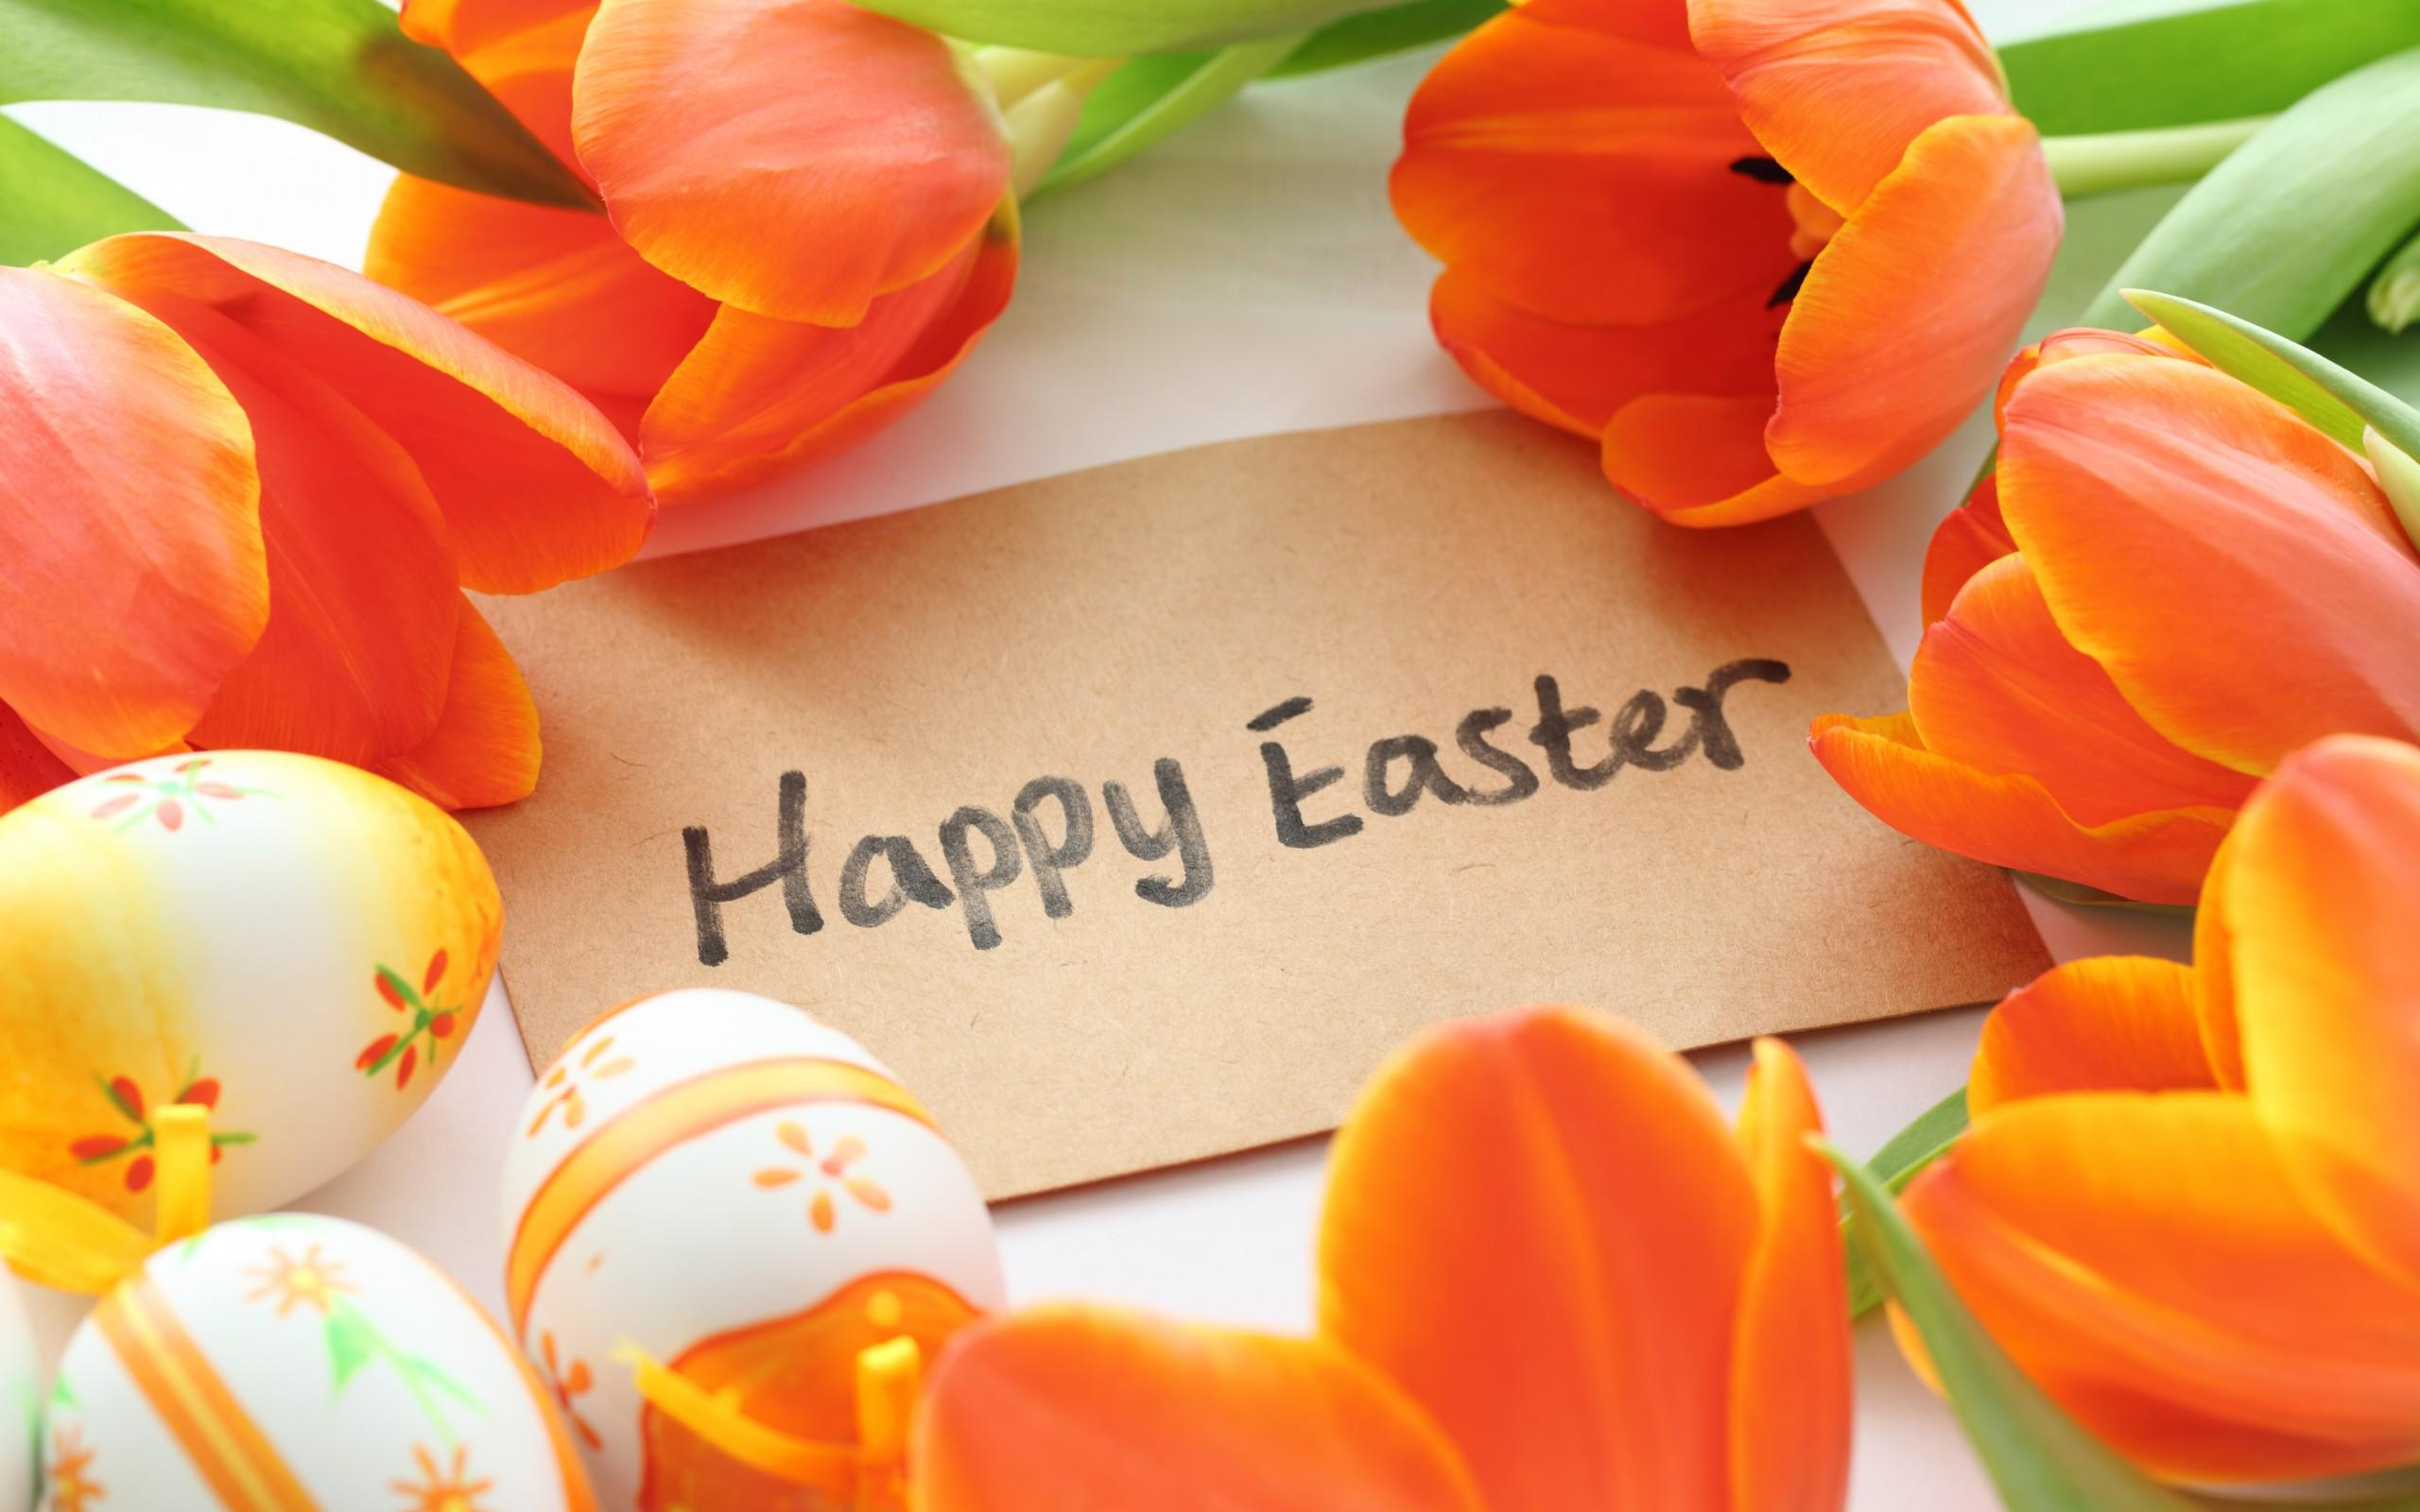 Happy Easter 2018 HD Wallpaper